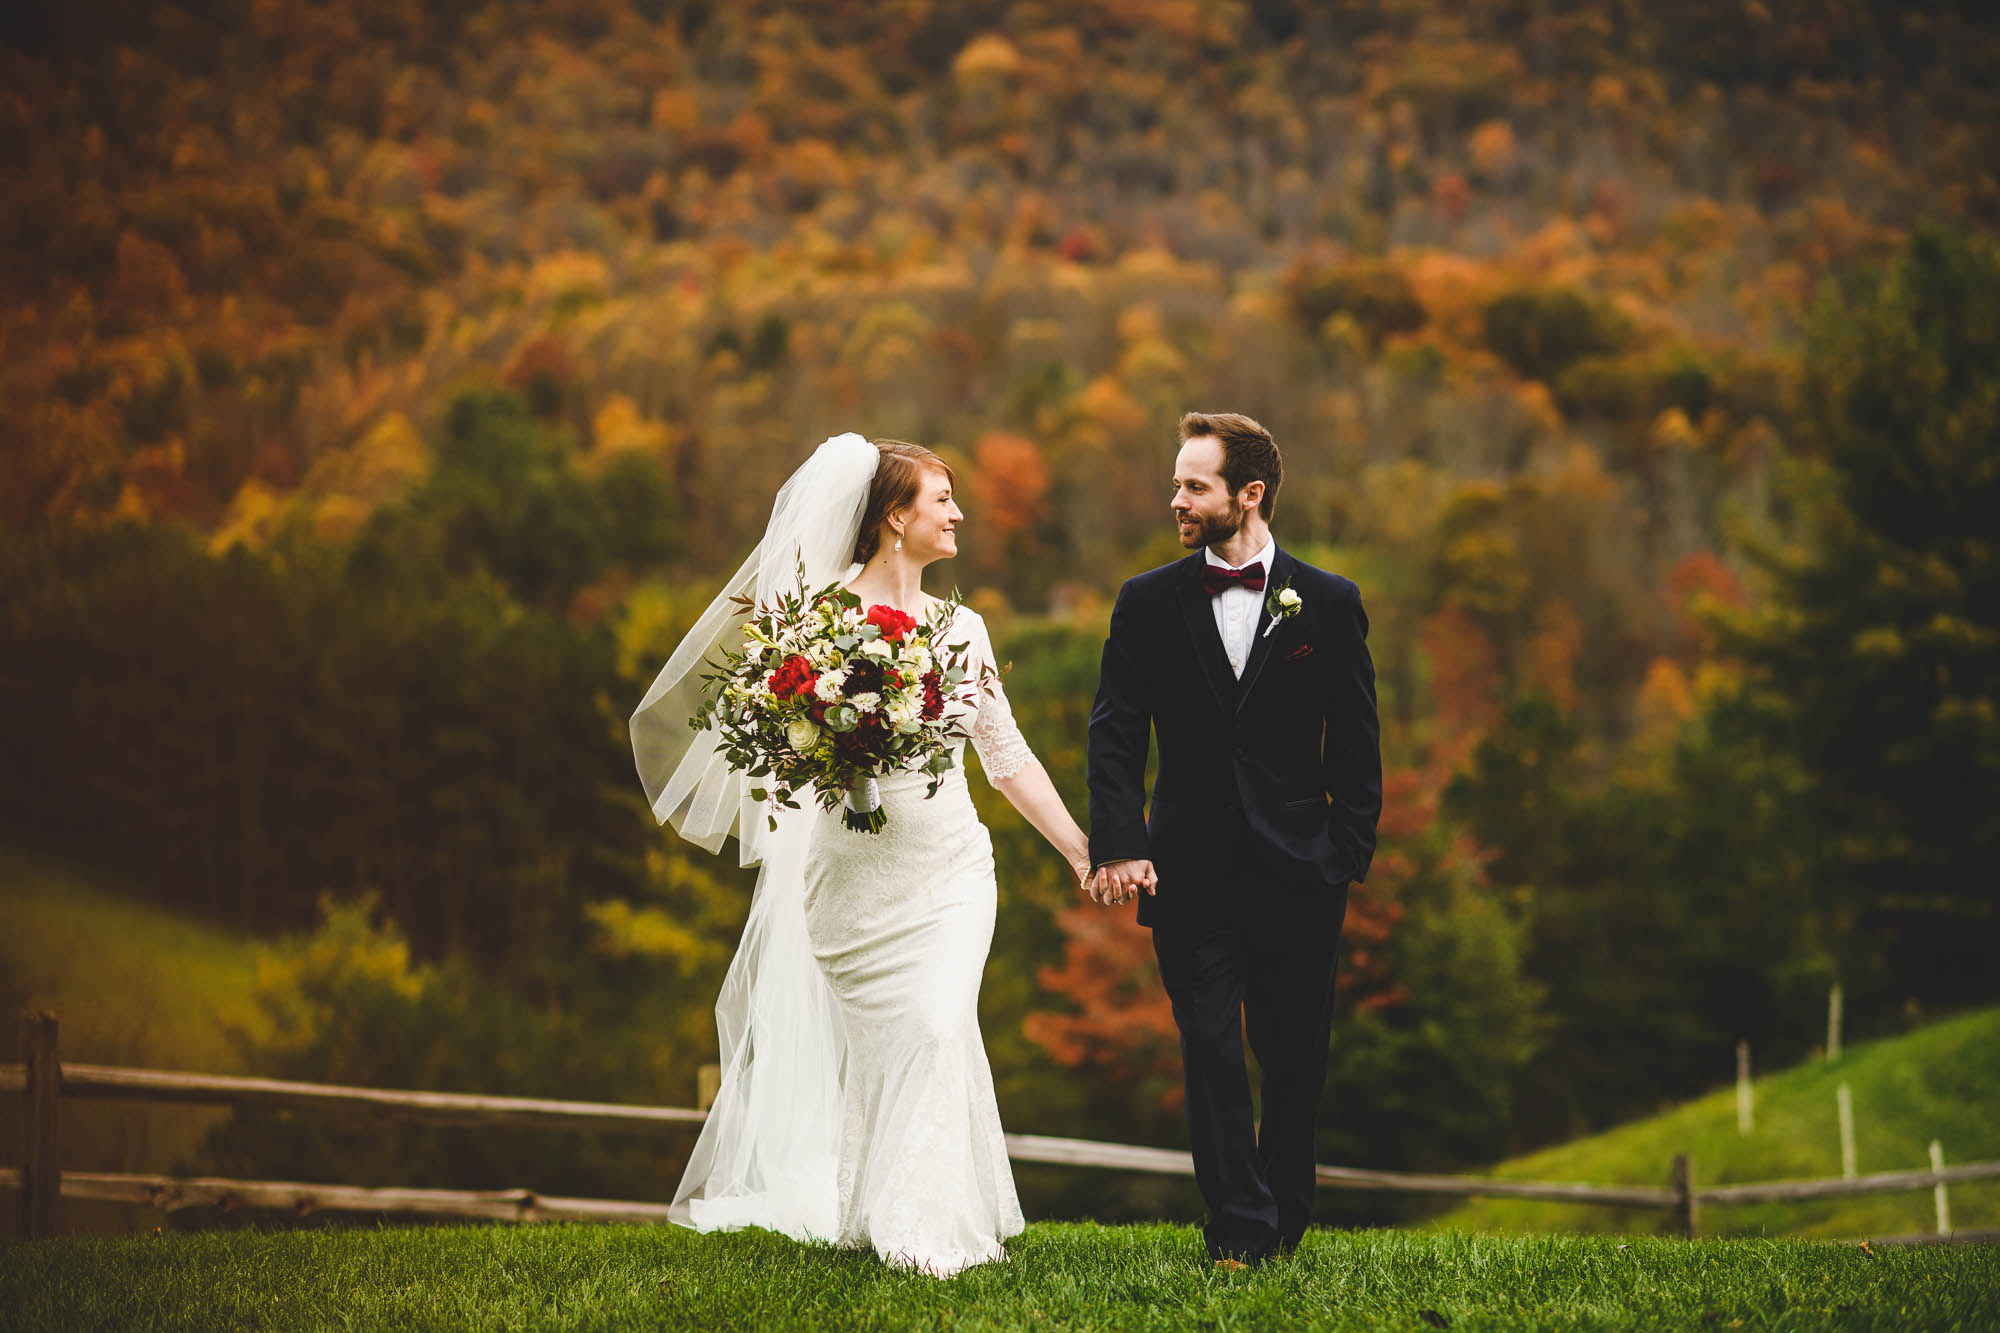 Waynesville, NC wedding